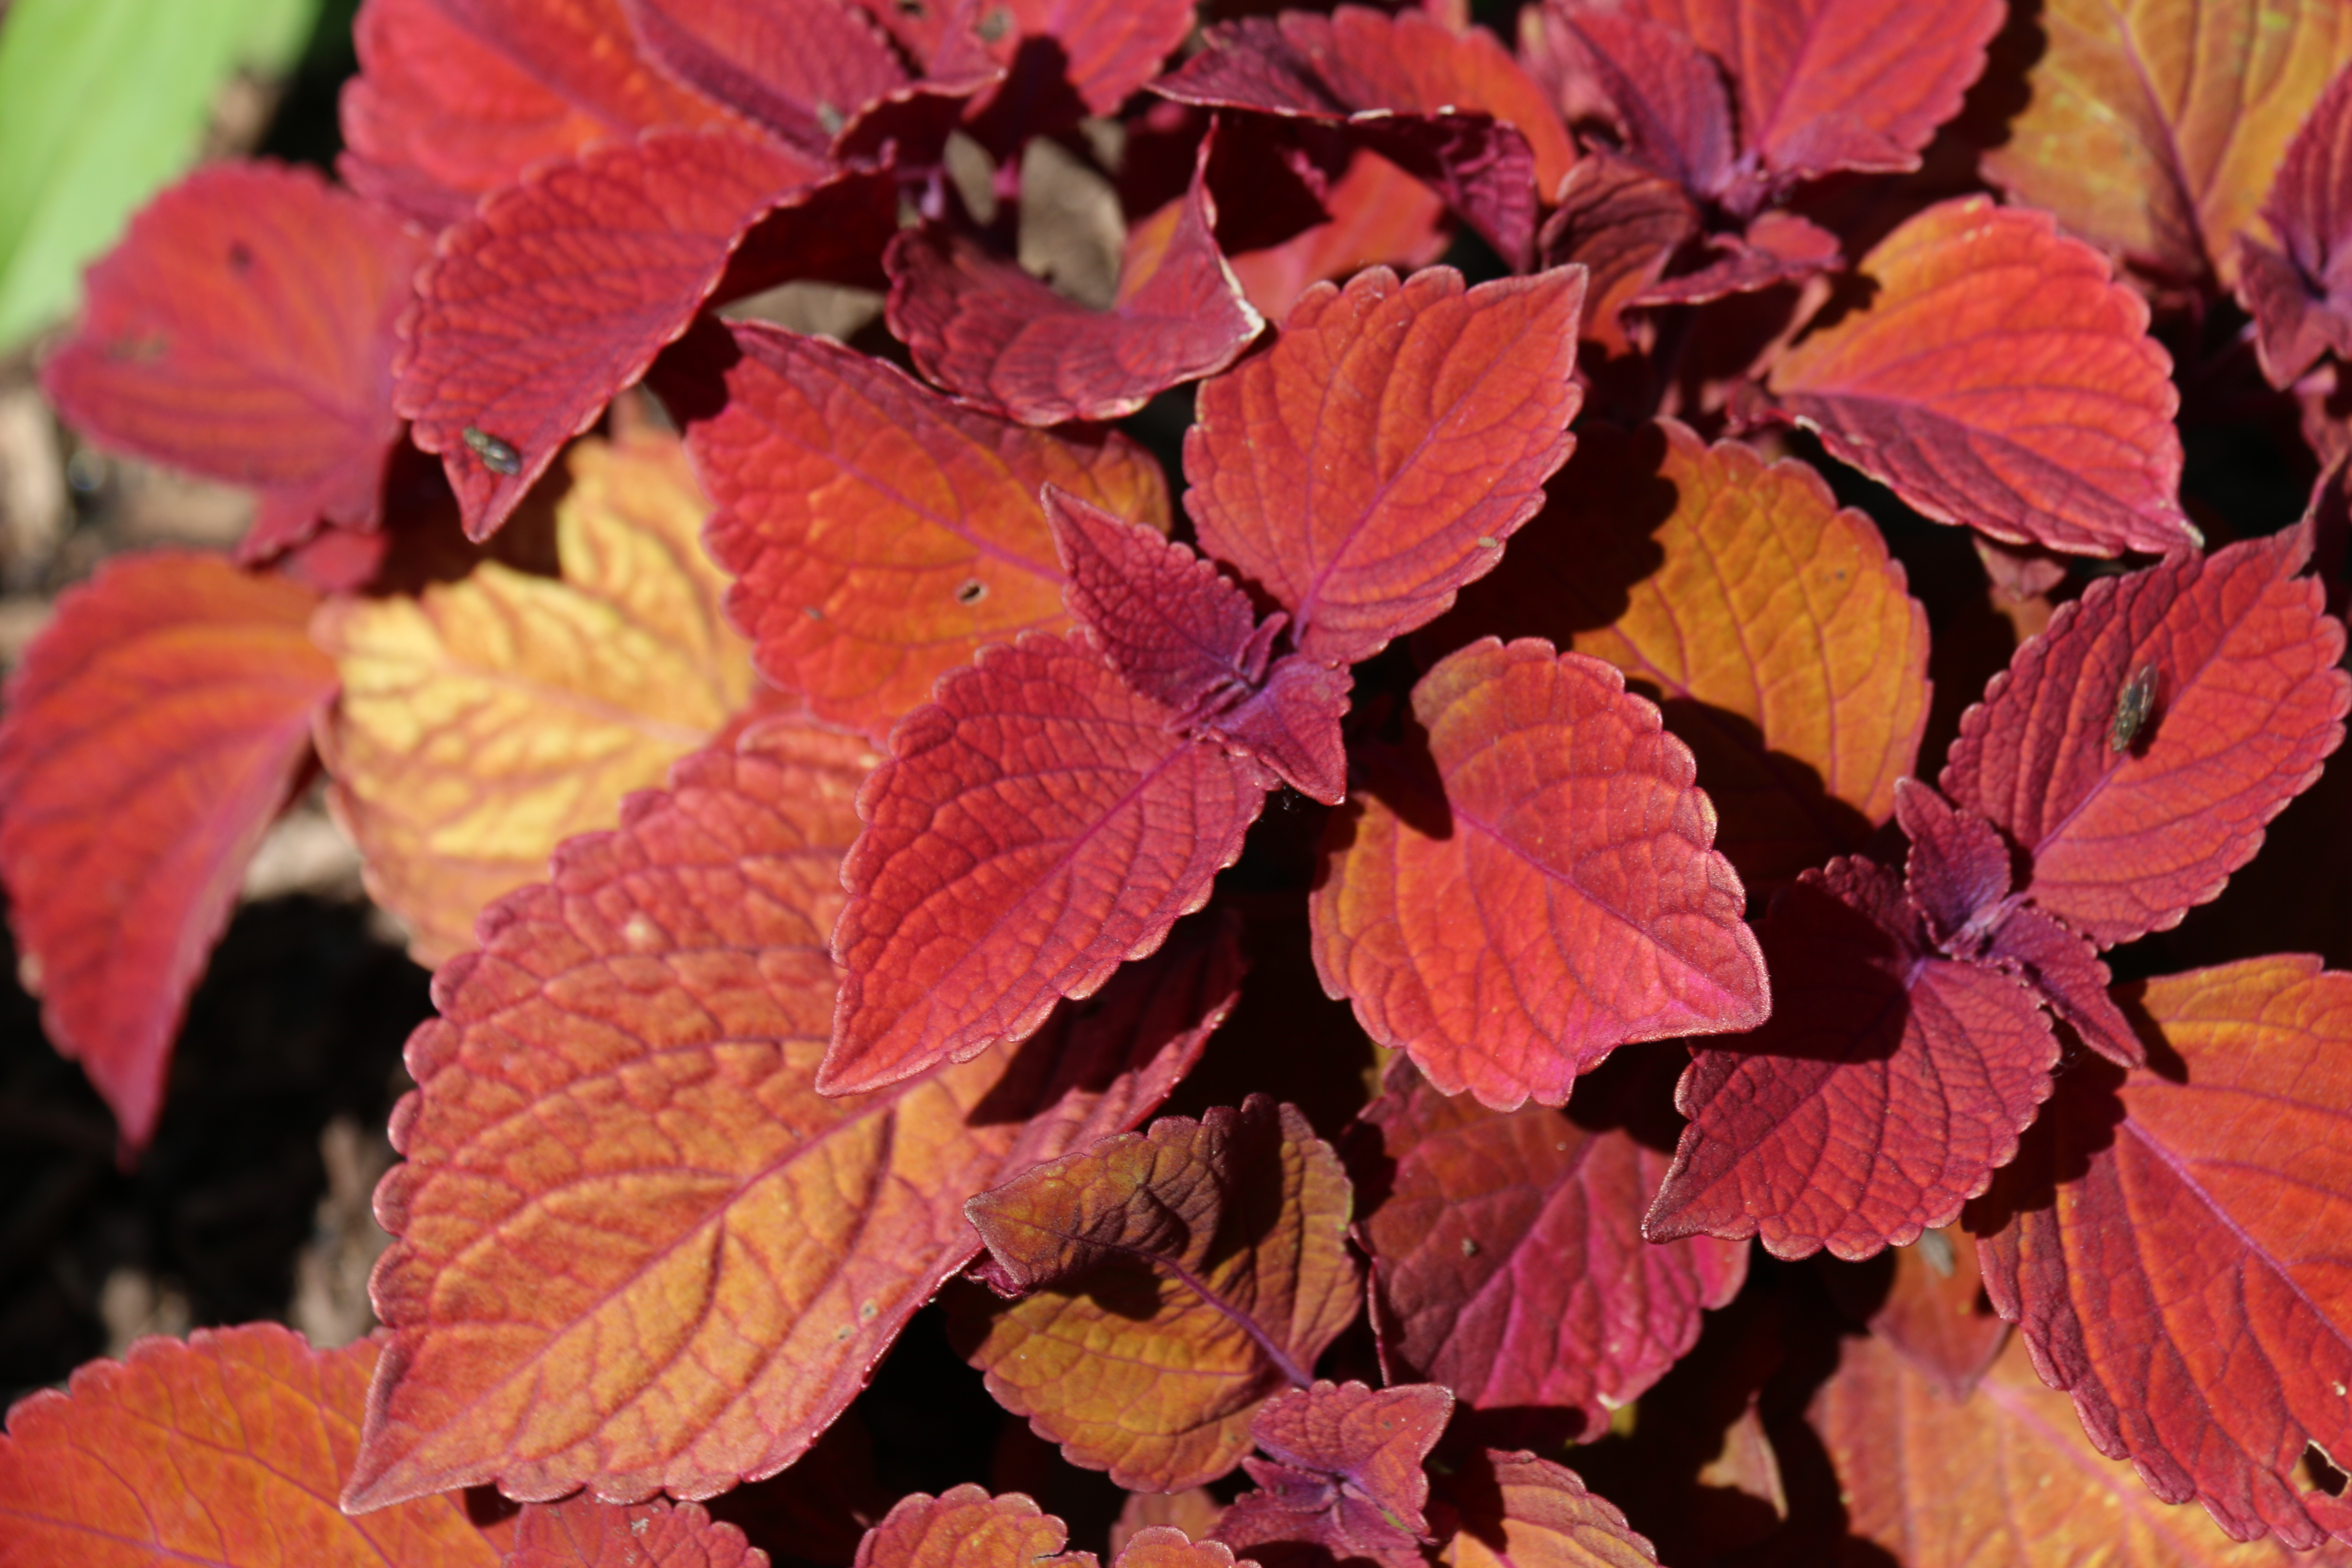 https://extension.illinois.edu/photolib/lib2211/coleus%5Fcampfire2.jpg